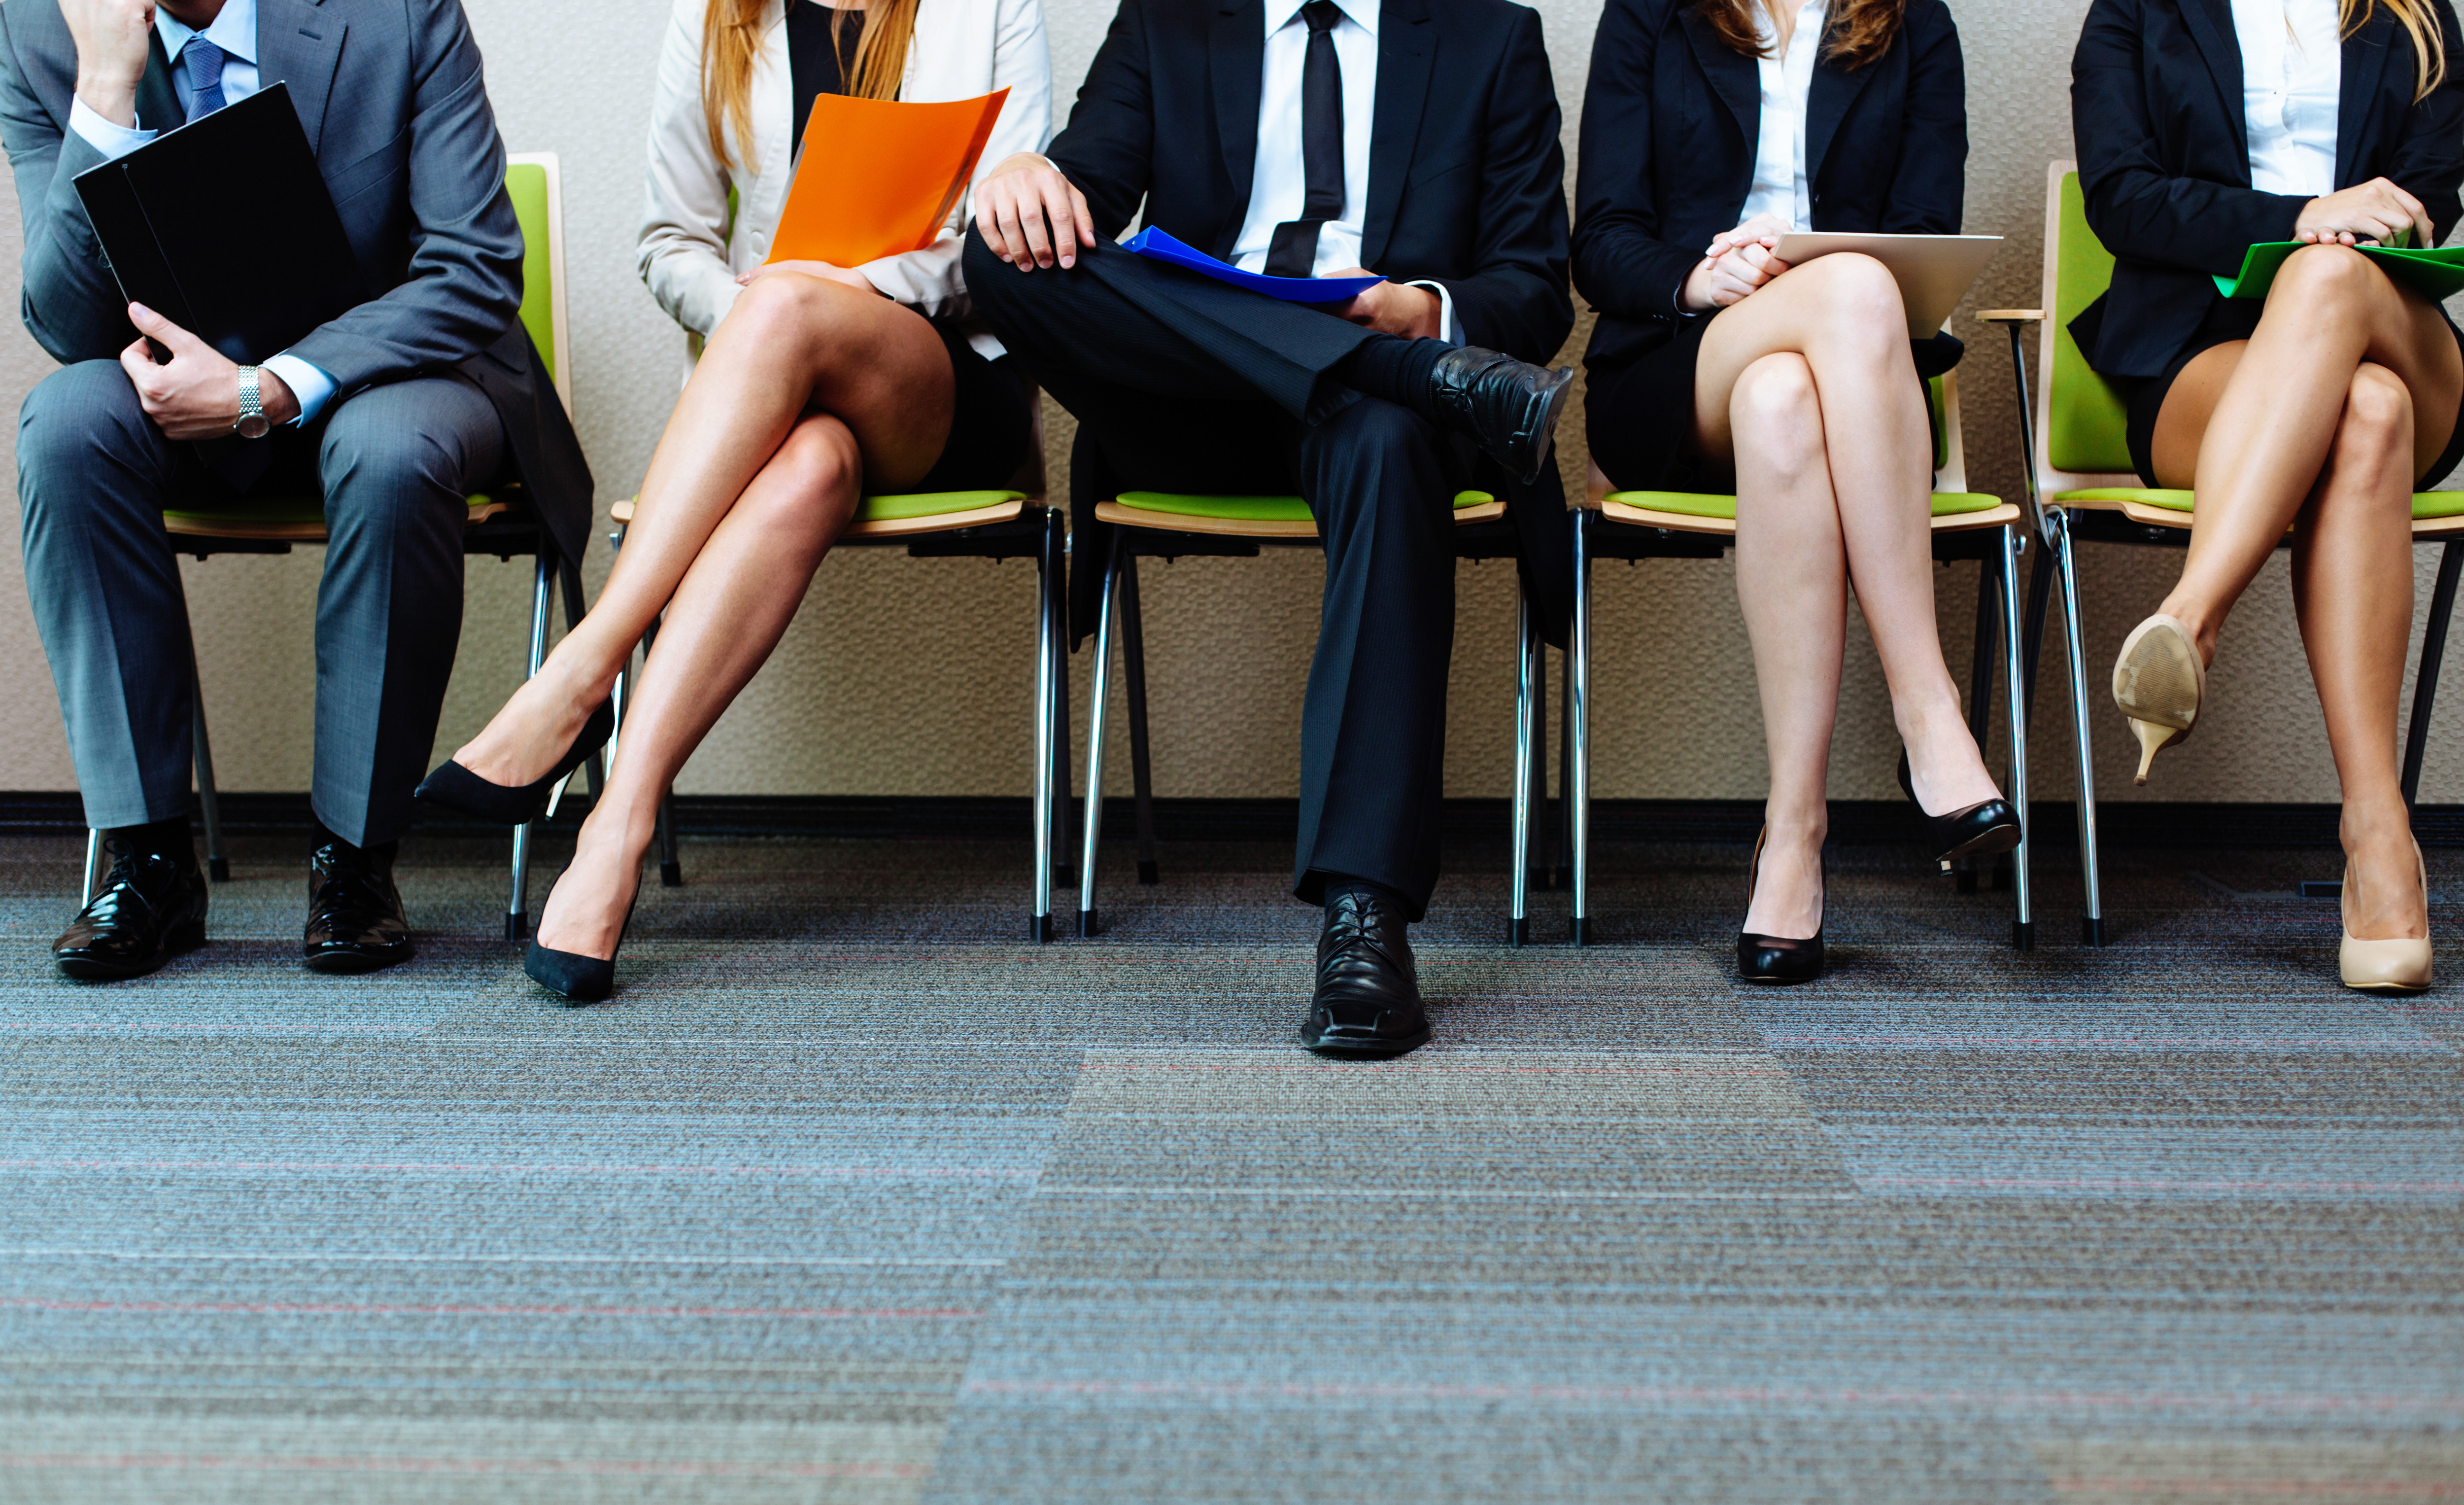 People sitting on chairs with their legs crossed - Upstart Personal Loans